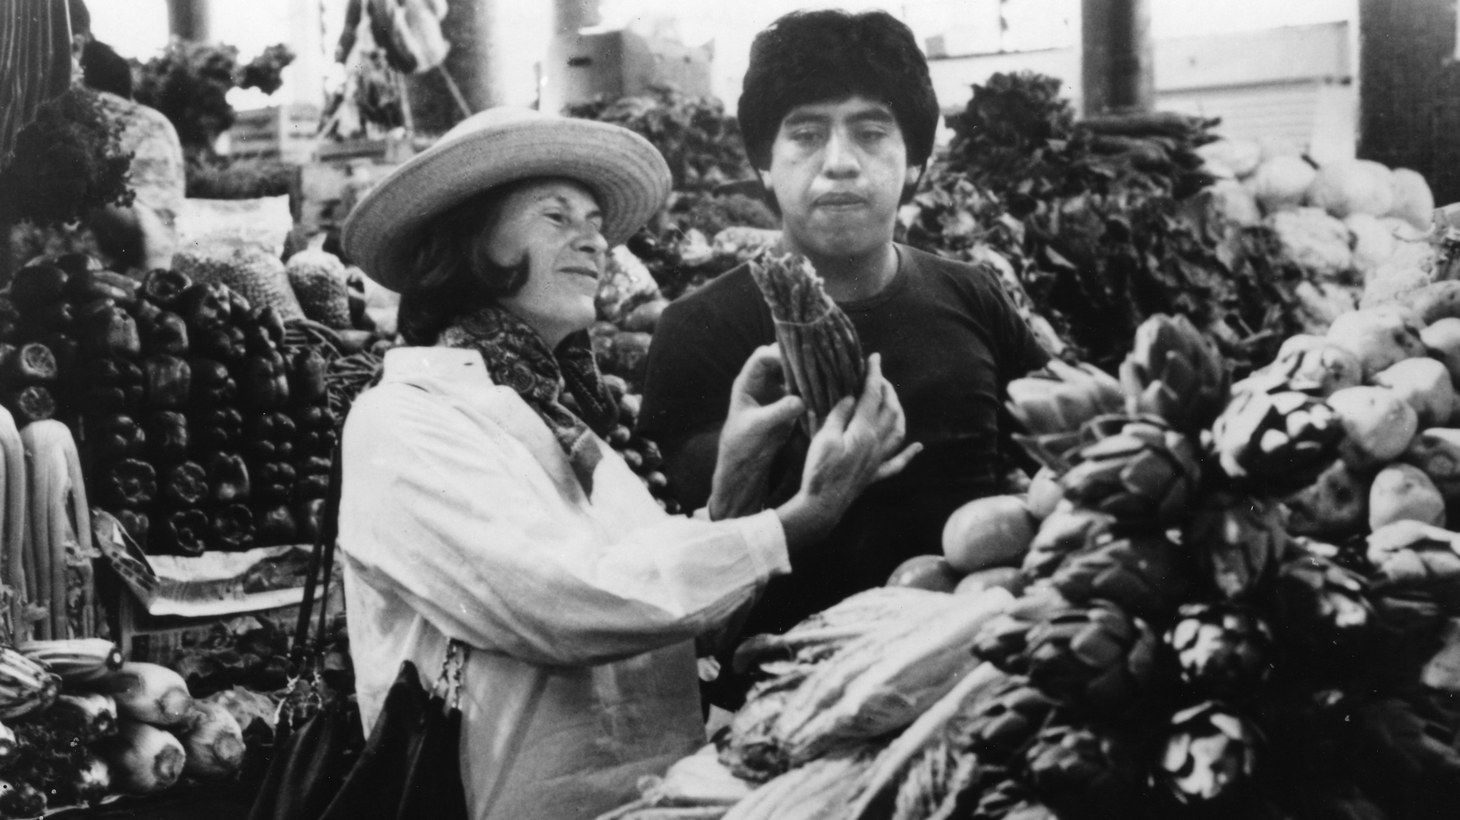 Diana Kennedy admires asparagus in a Mexico City market in the 1960s.